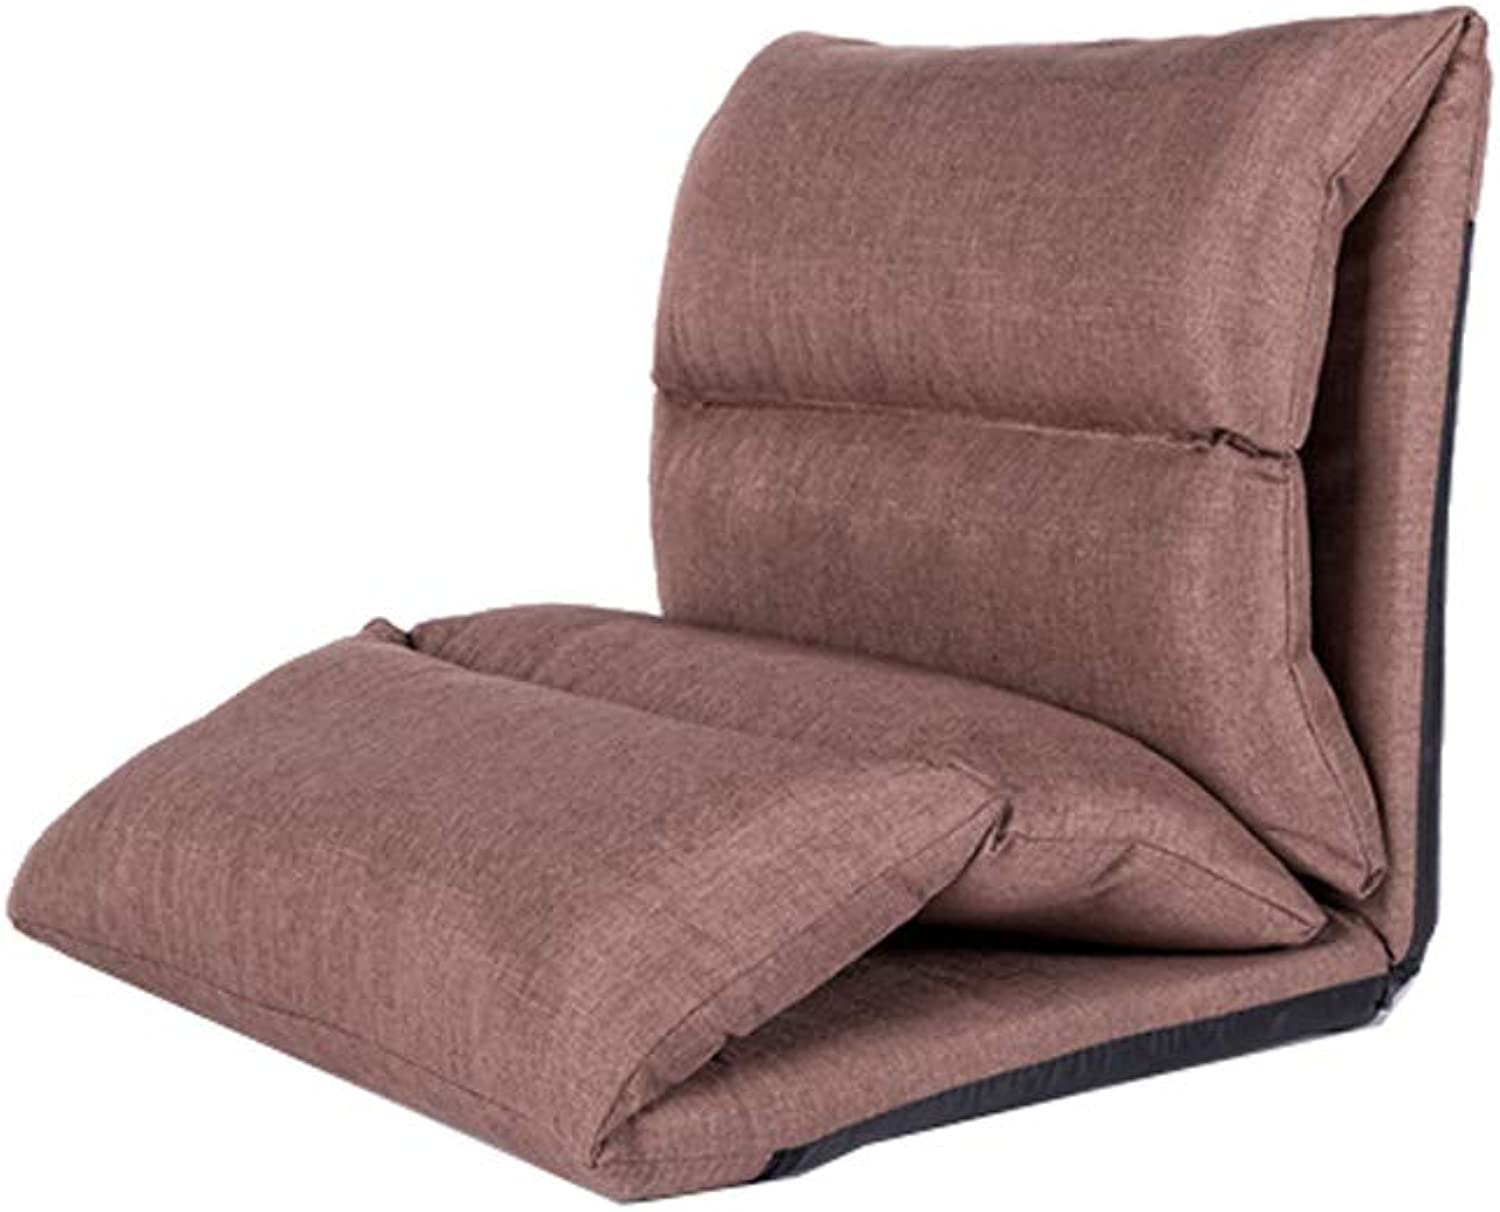 Single Foldable Lazy Couch Modern Living Room Balcony Chair